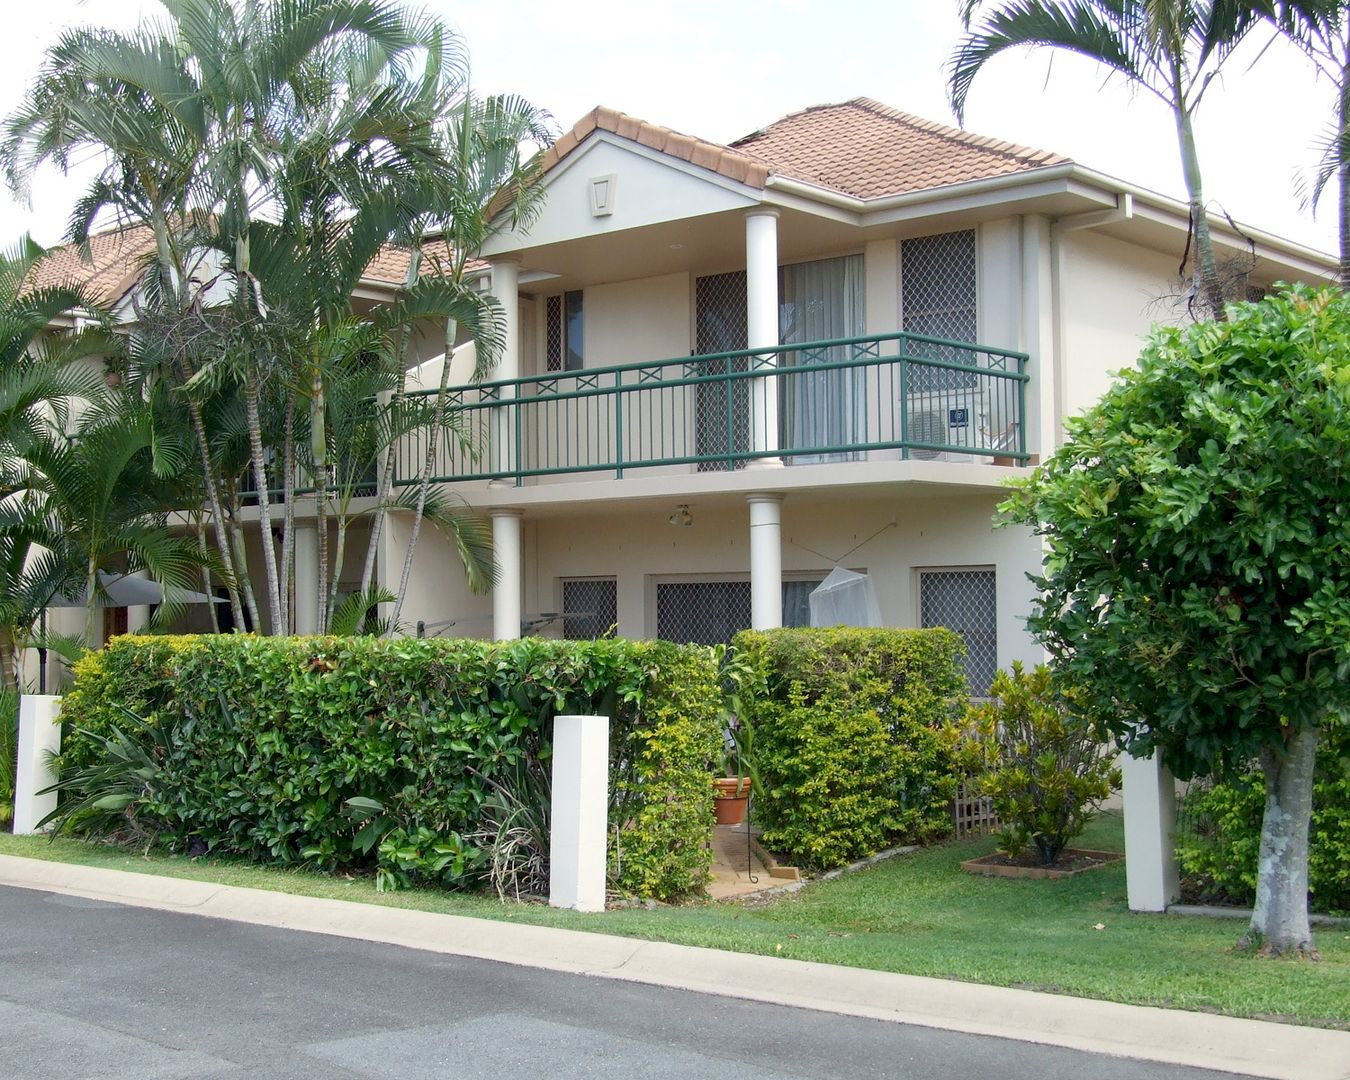 8/5 Bronberg Court, Southport QLD 4215, Image 1